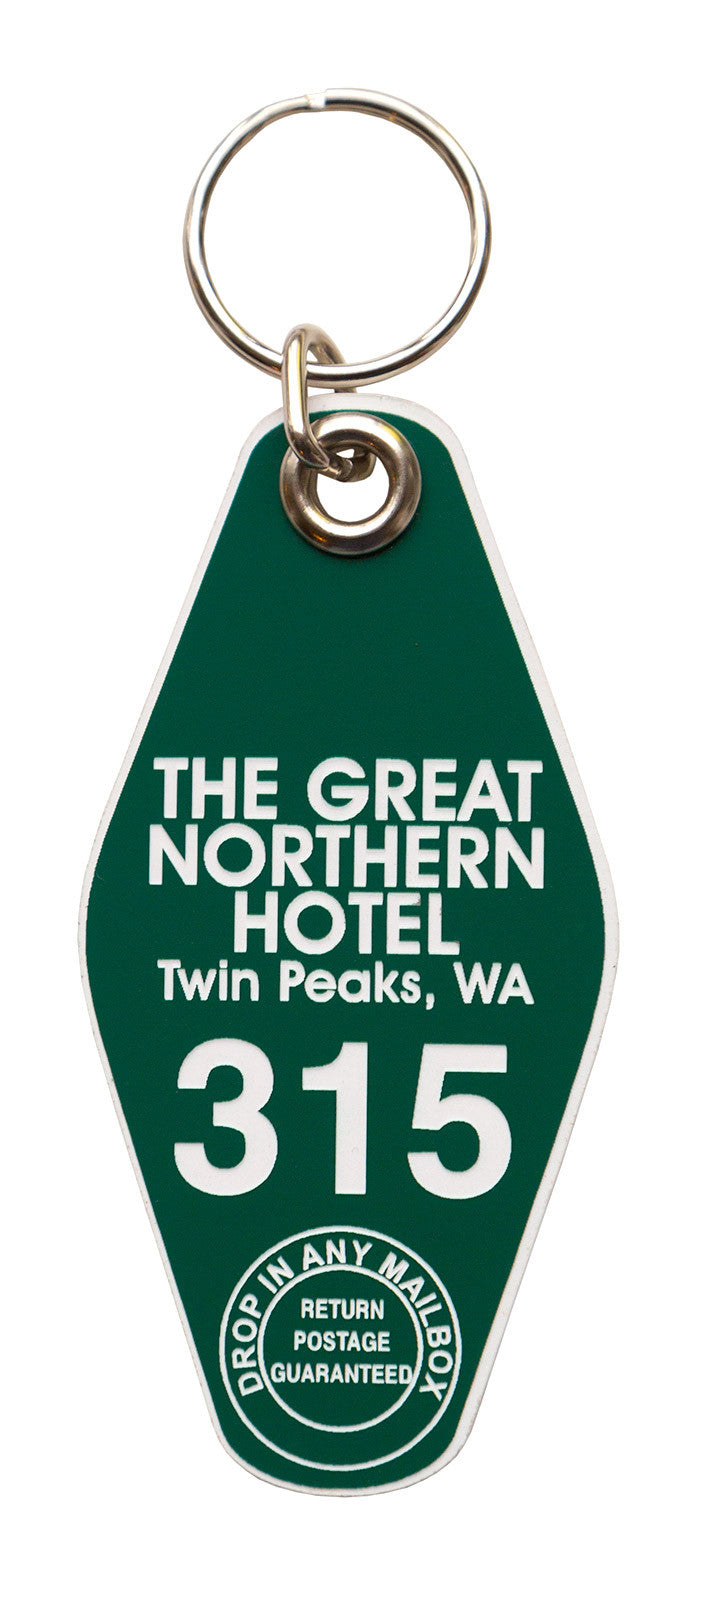 The Great Northern Hotel Motel Style Keychain Tag Room 315 Green And White